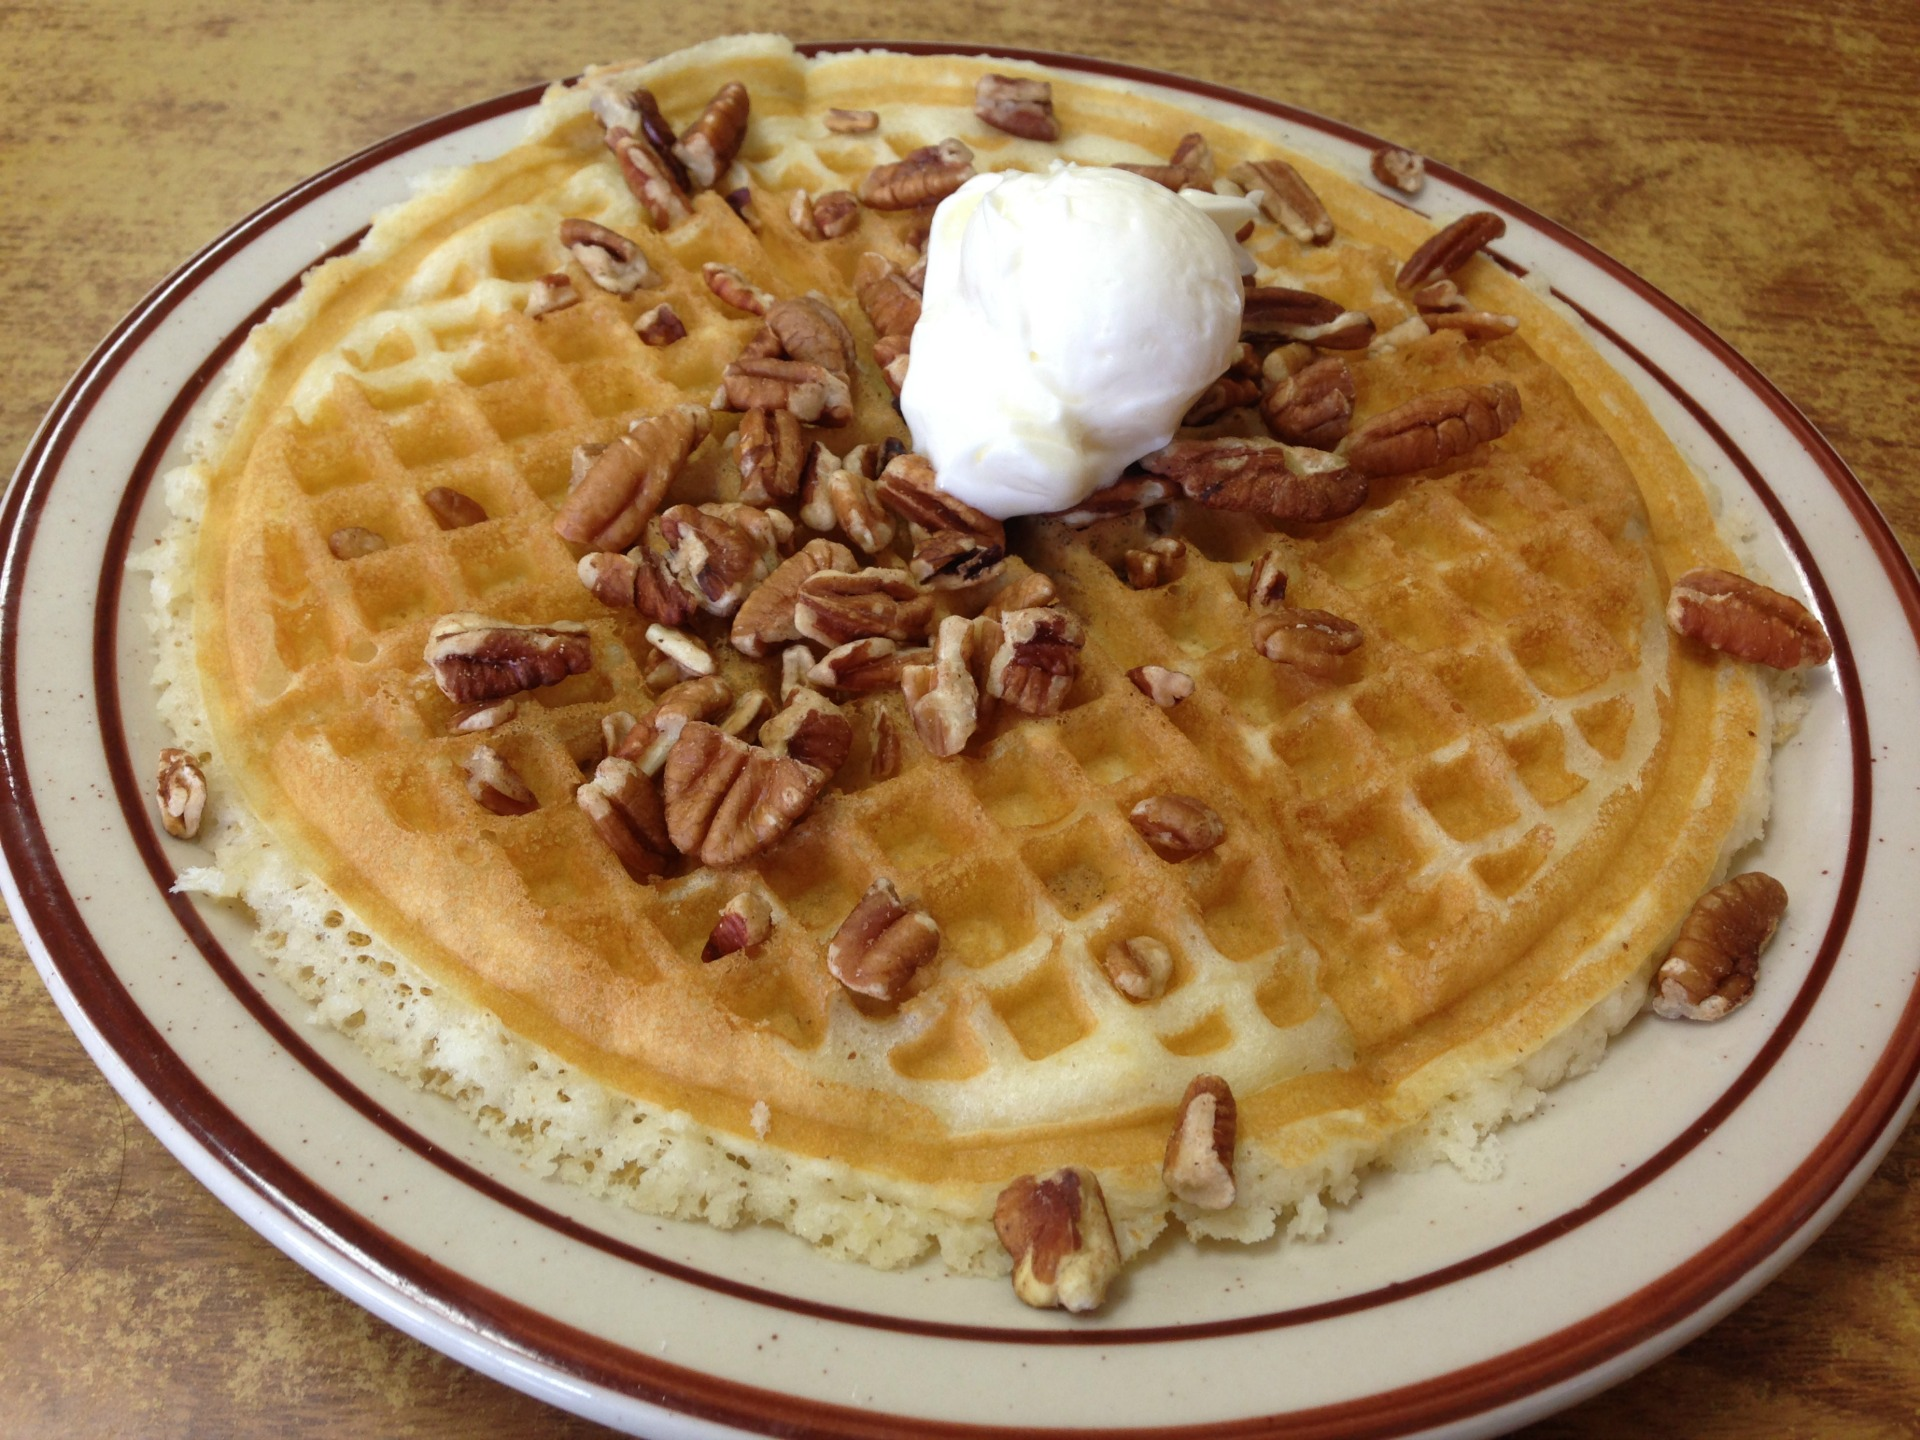 A pecan waffle from Ole's Waffle Shop.